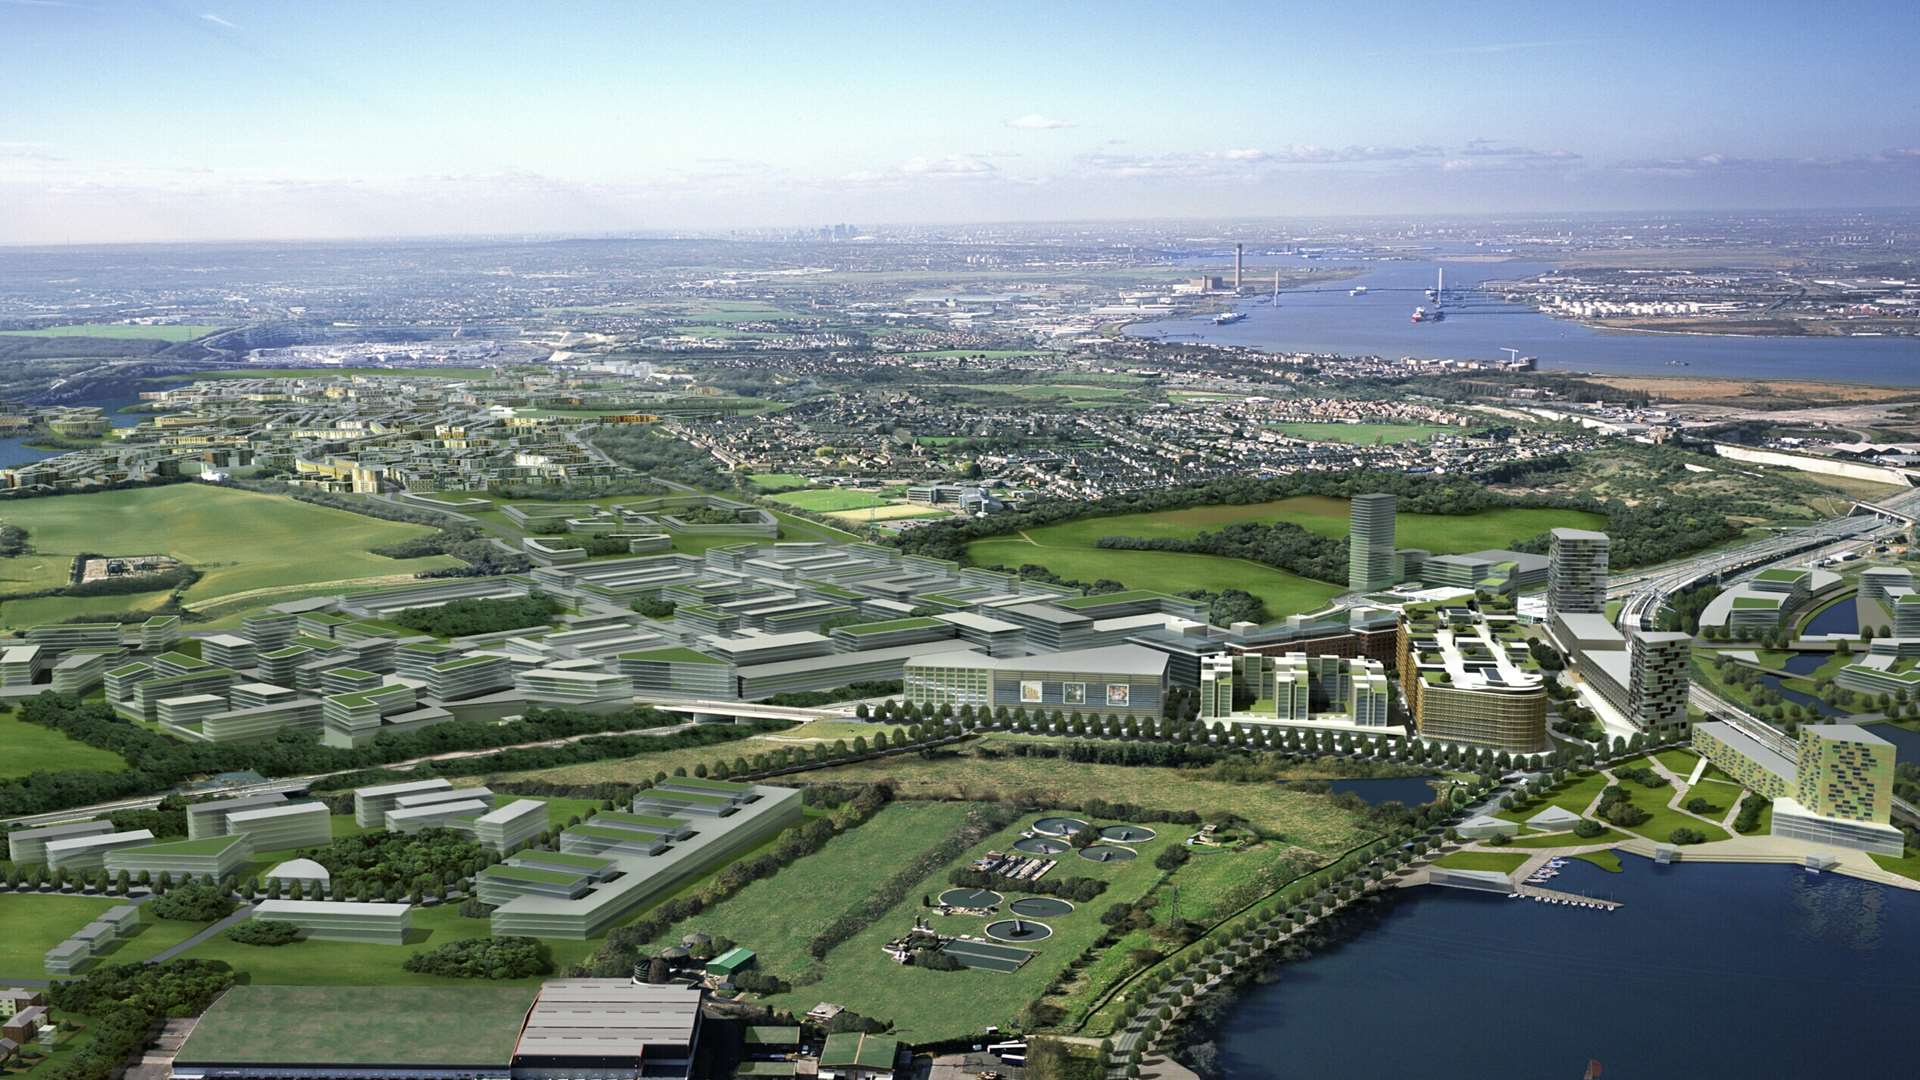 Developer Land Securities' former vision for a new town at Ebbsfleet